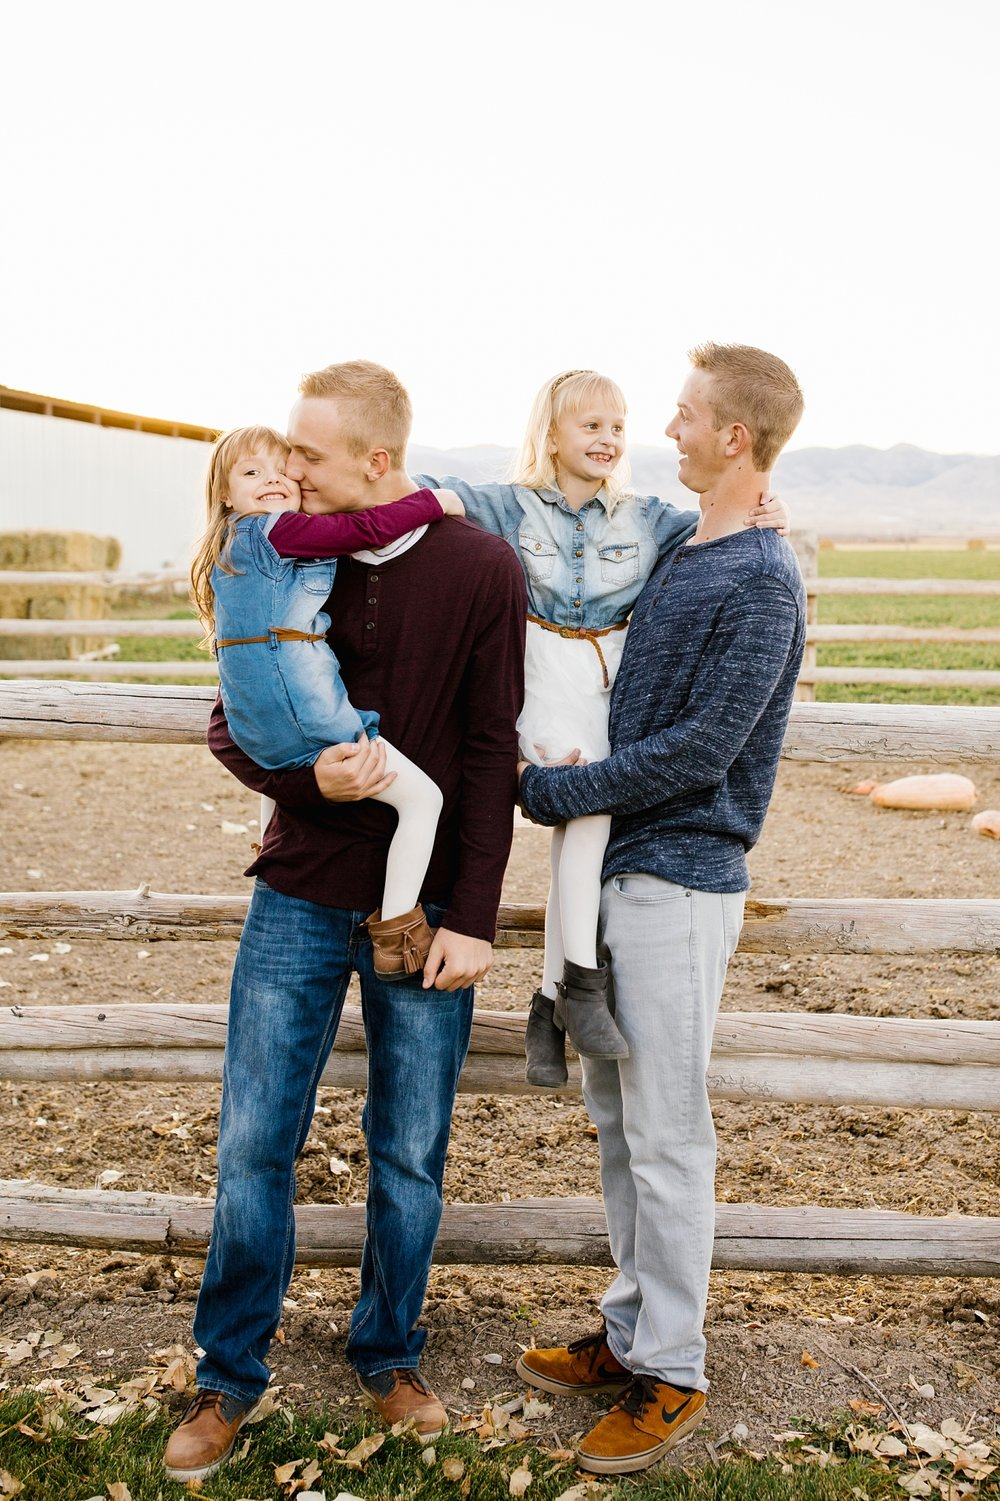 Mickelsen-59_Lizzie-B-Imagery-Utah-Family-Photographer-Lifestyle-Photography-Salt-Lake-City-Park-City-Utah-County.jpg